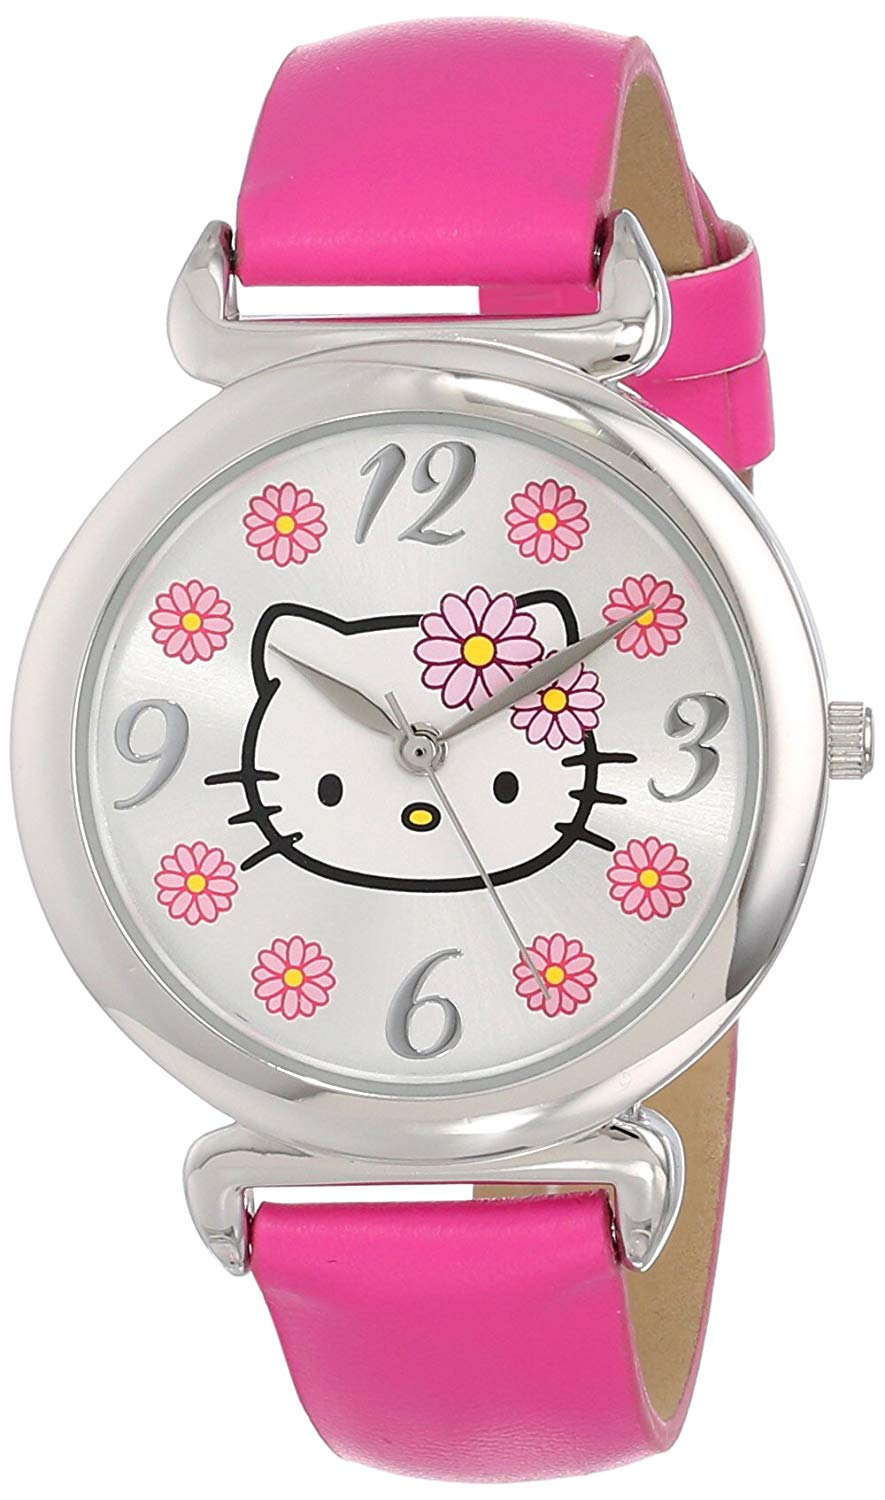 Sanrio Hello Kitty Women's Watch With Pink Leather Band - HKAQ5371